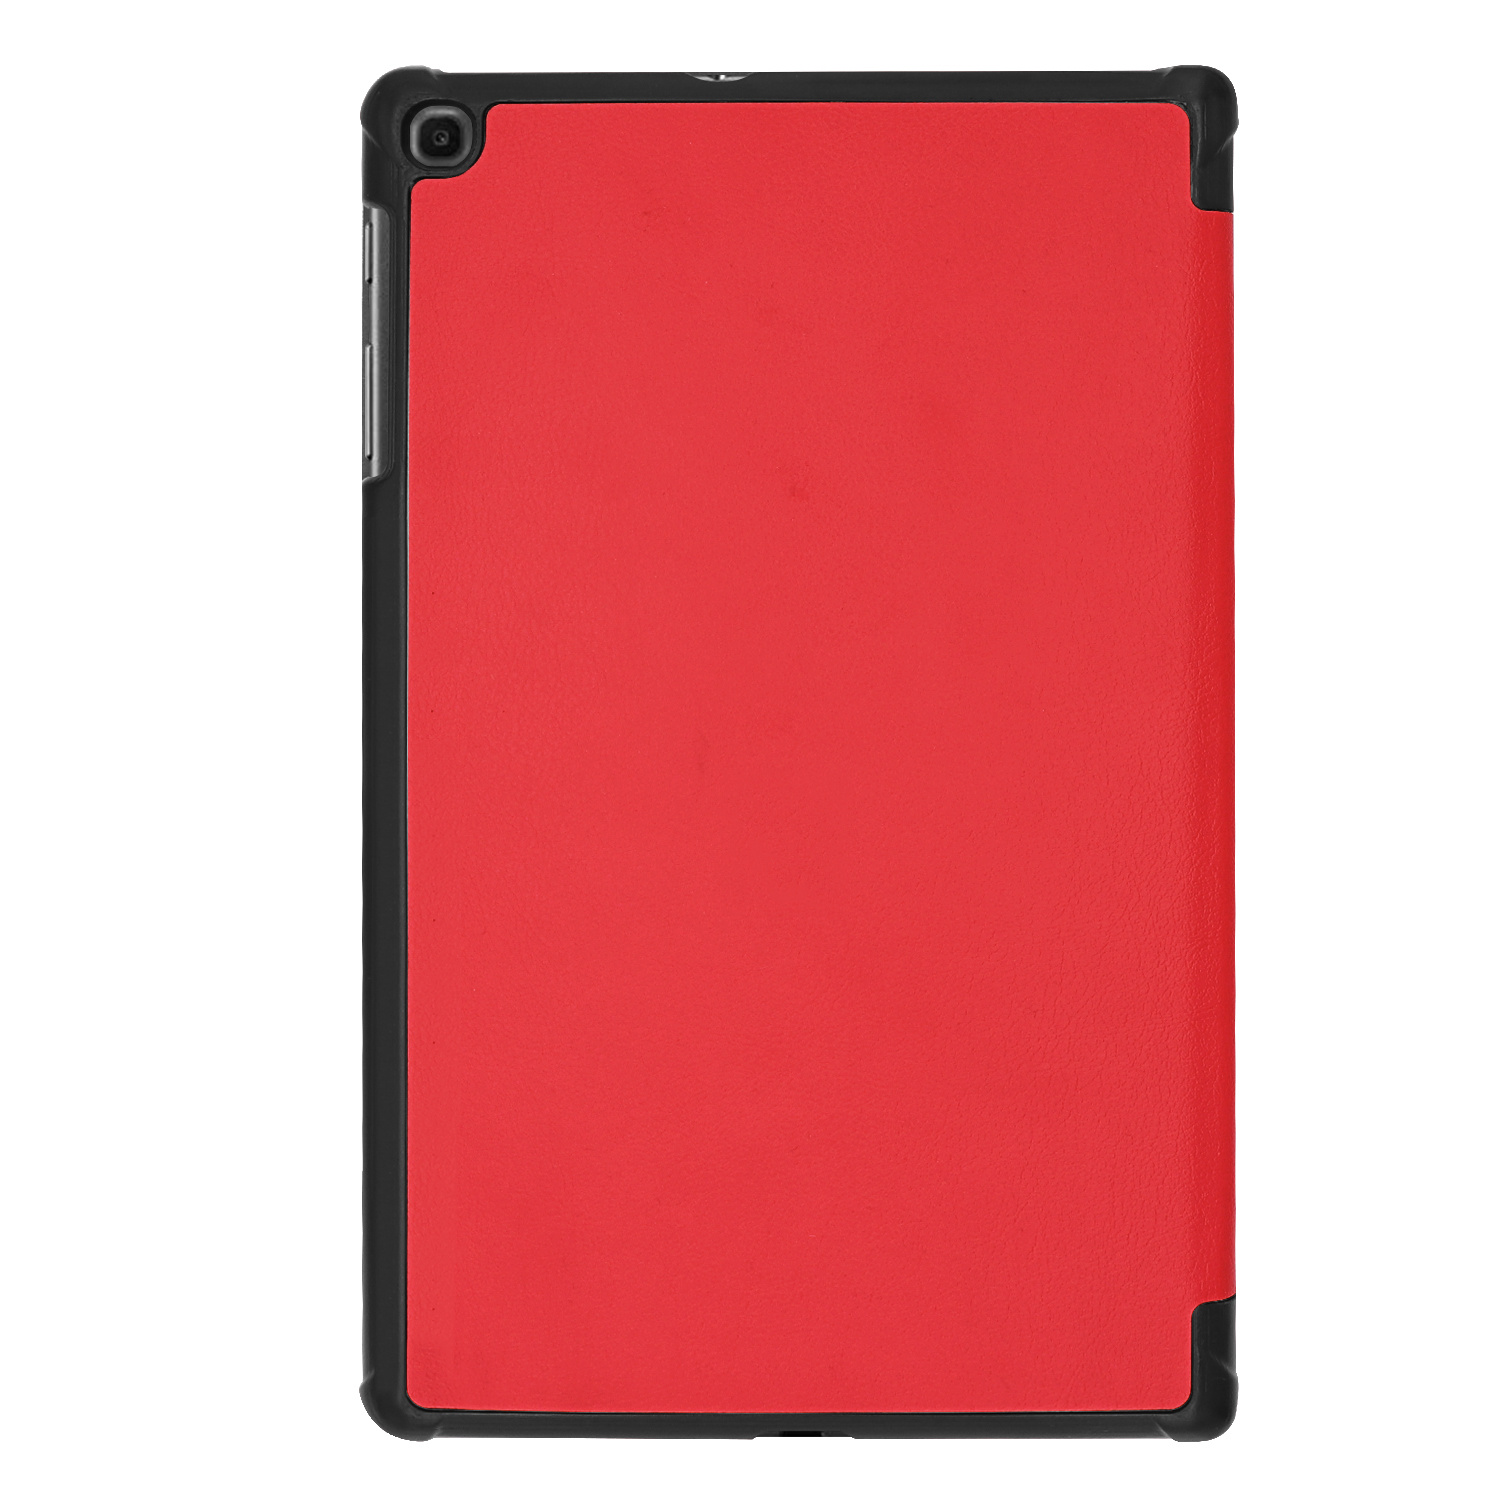 3-Vouw cover hoes Rood voor de Samsung Galaxy Tab A 10.1 inch (2019)